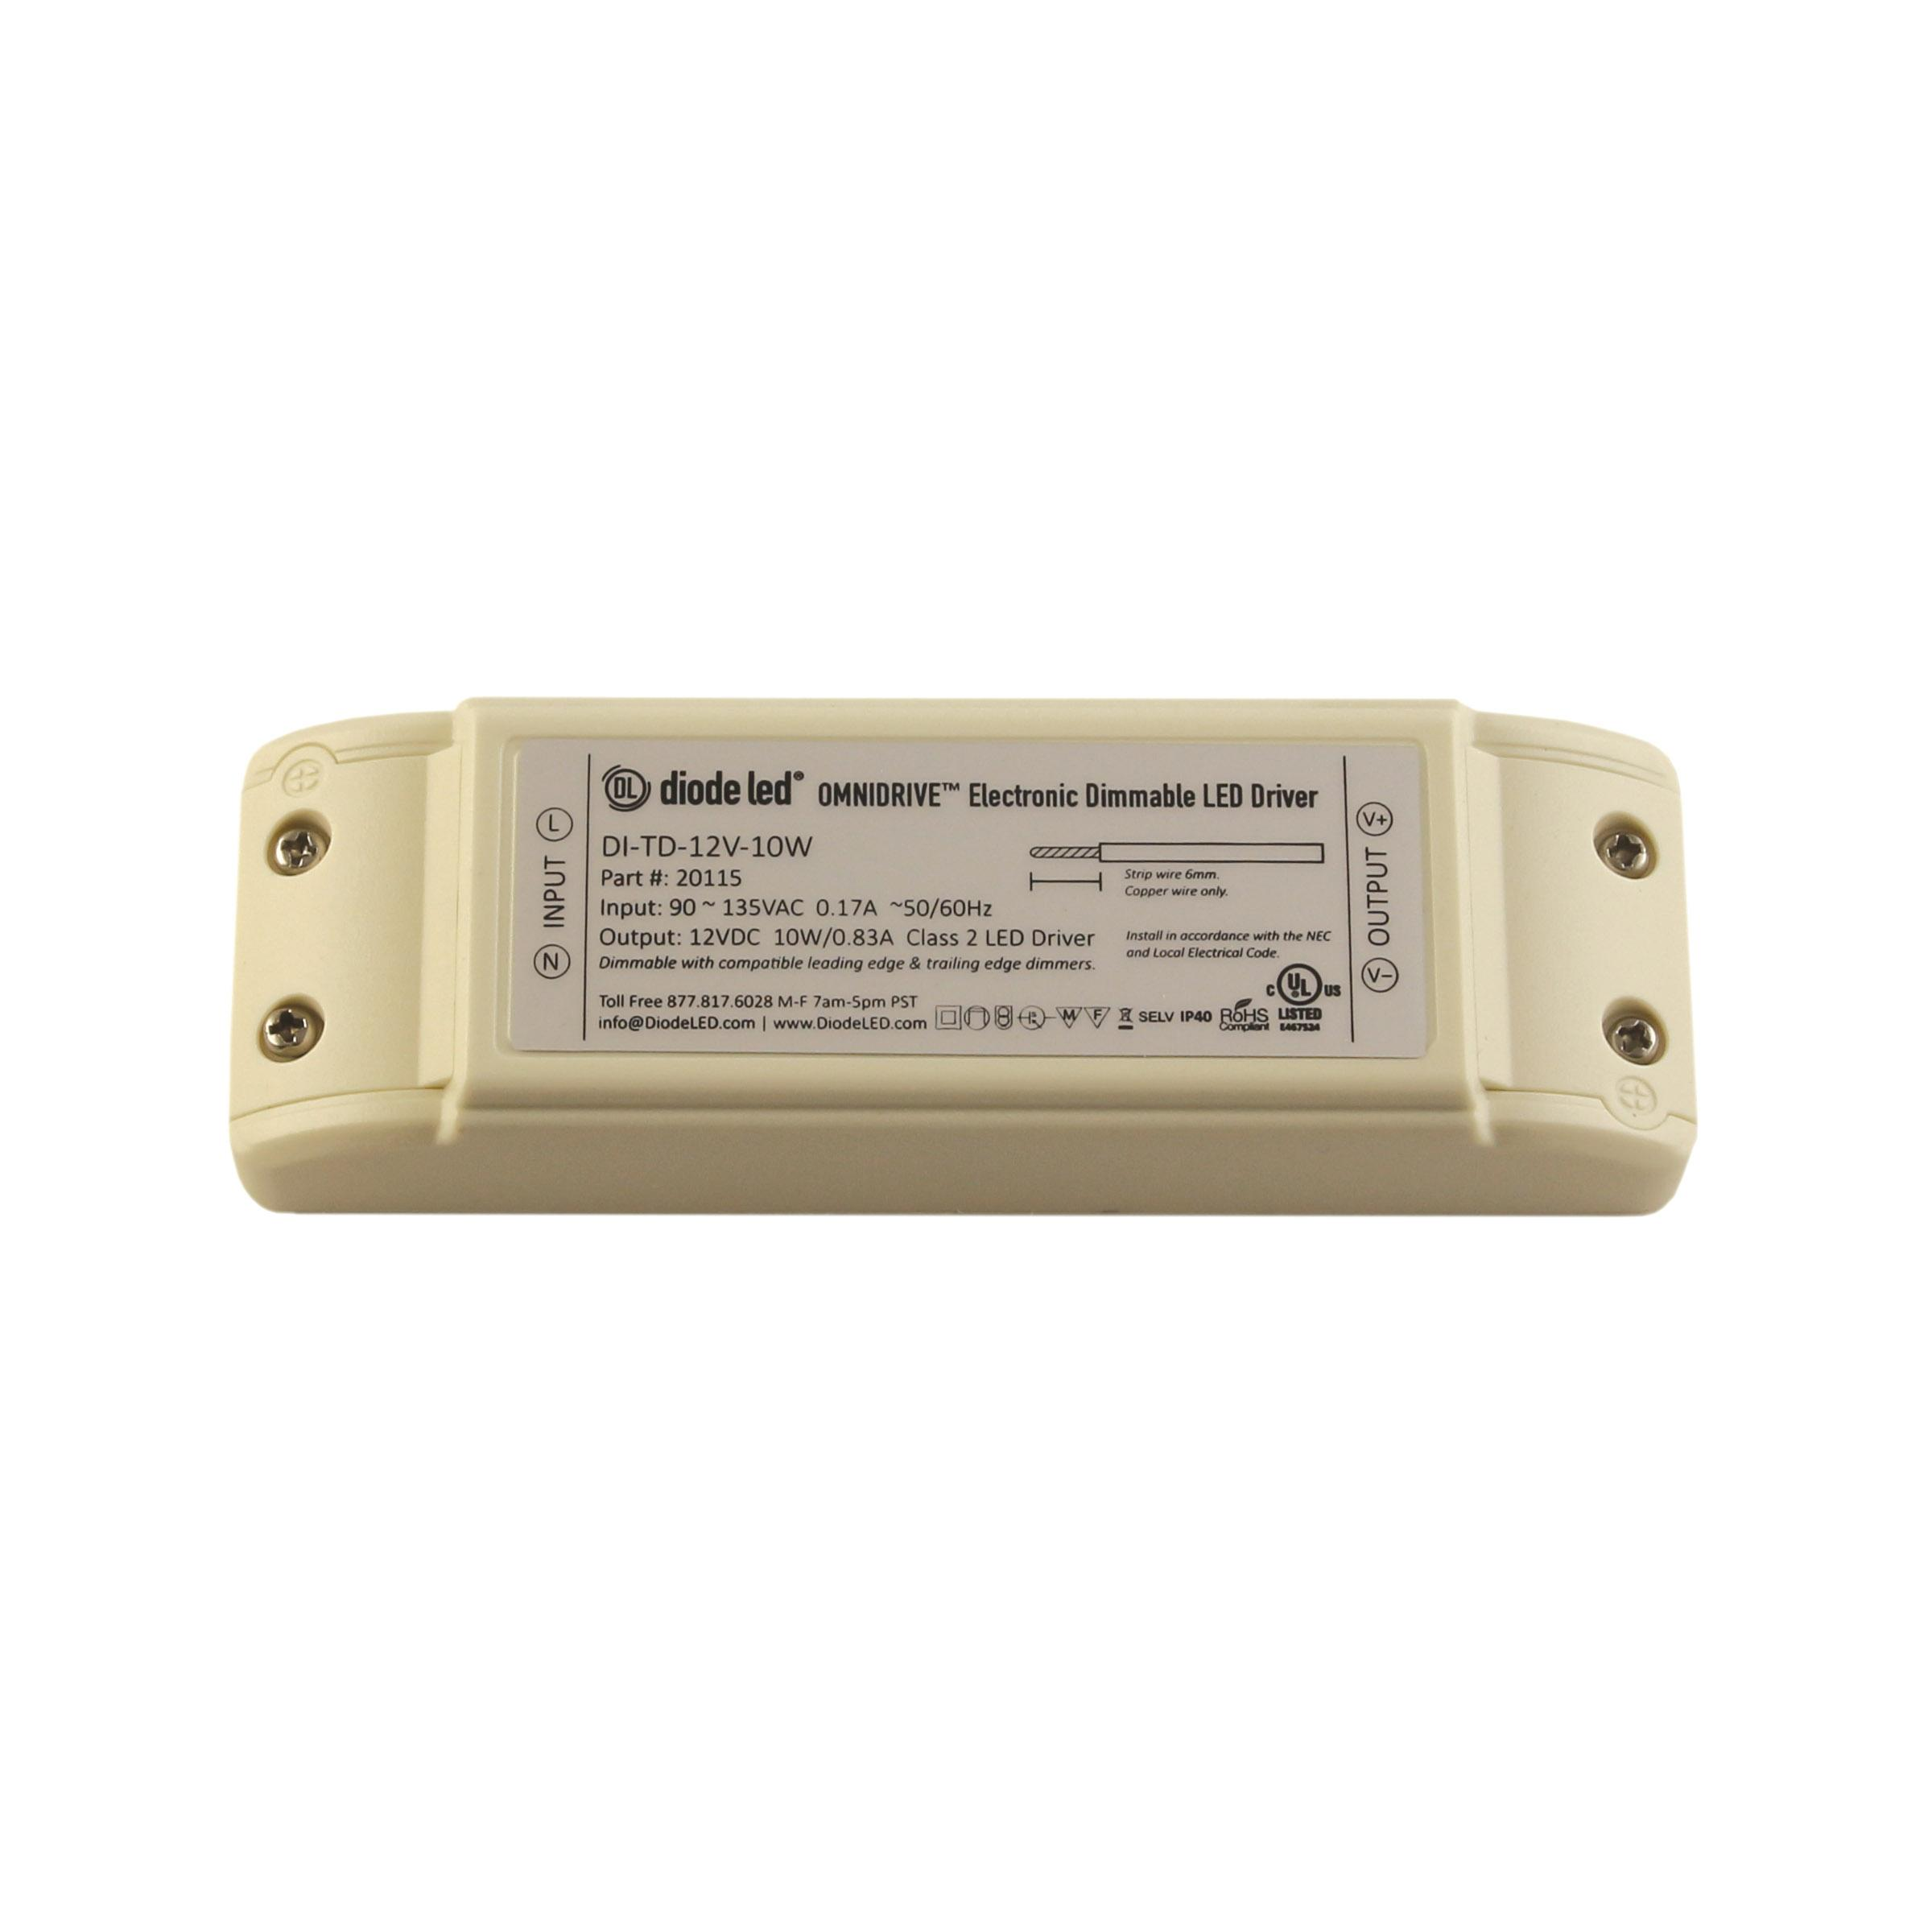 Dimmable Led Power Supplies Omnidrive Electronic Drivers Driver Dimming Supply Dimmer For Strip 12v 24v